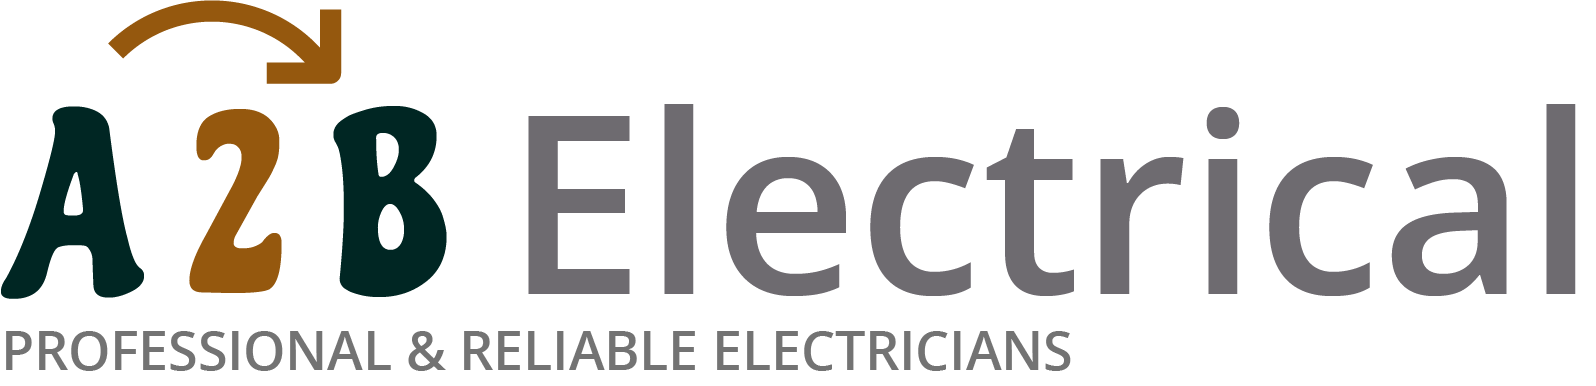 If you have electrical wiring problems in Ladywell, we can provide an electrician to have a look for you.